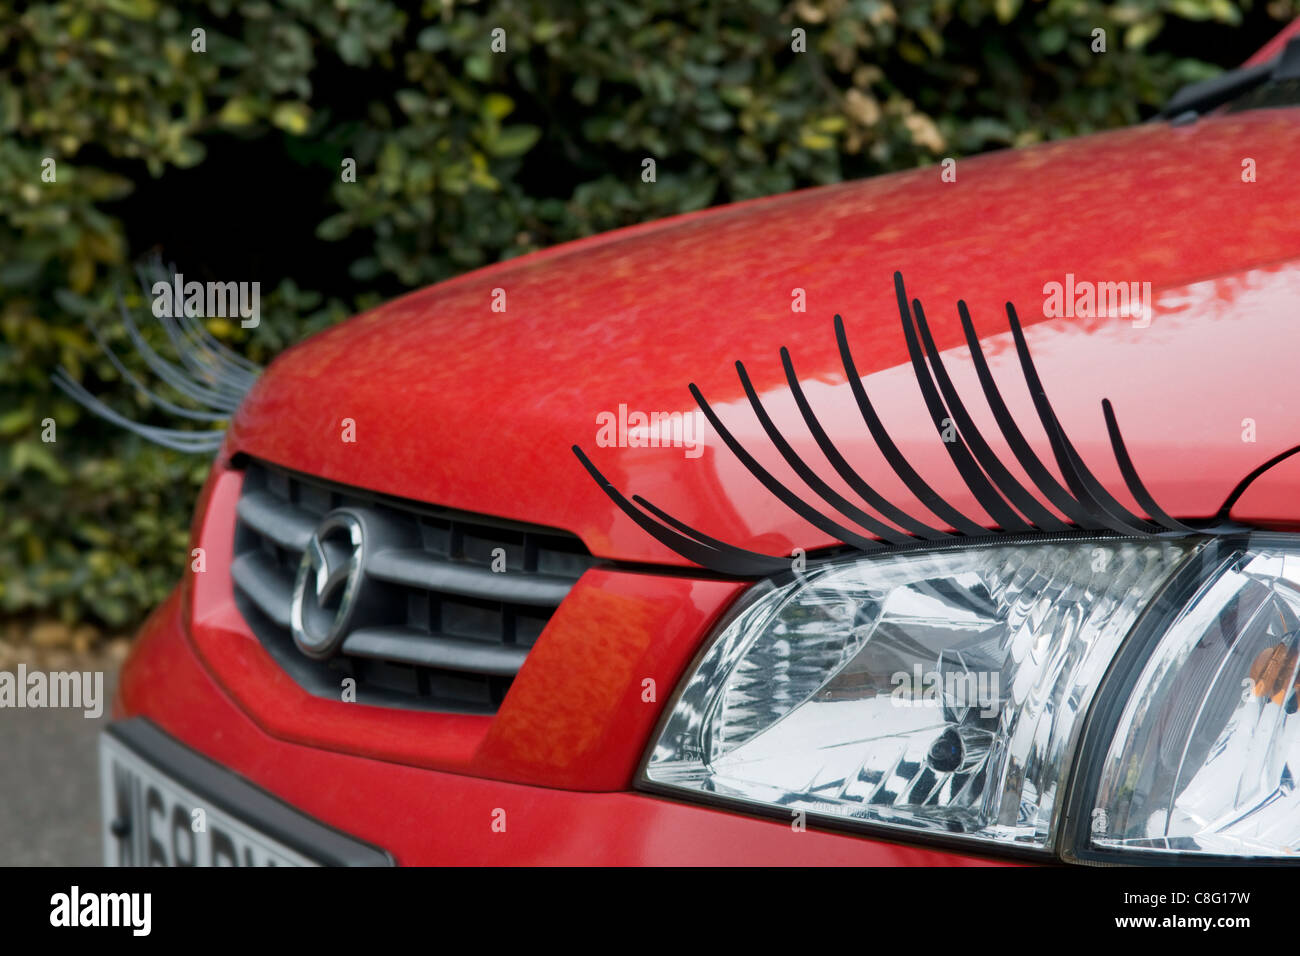 Amusing shot of a red car with eyelash accessory kit added taken in Bristol, UK.  This image can only be used for - Stock Image